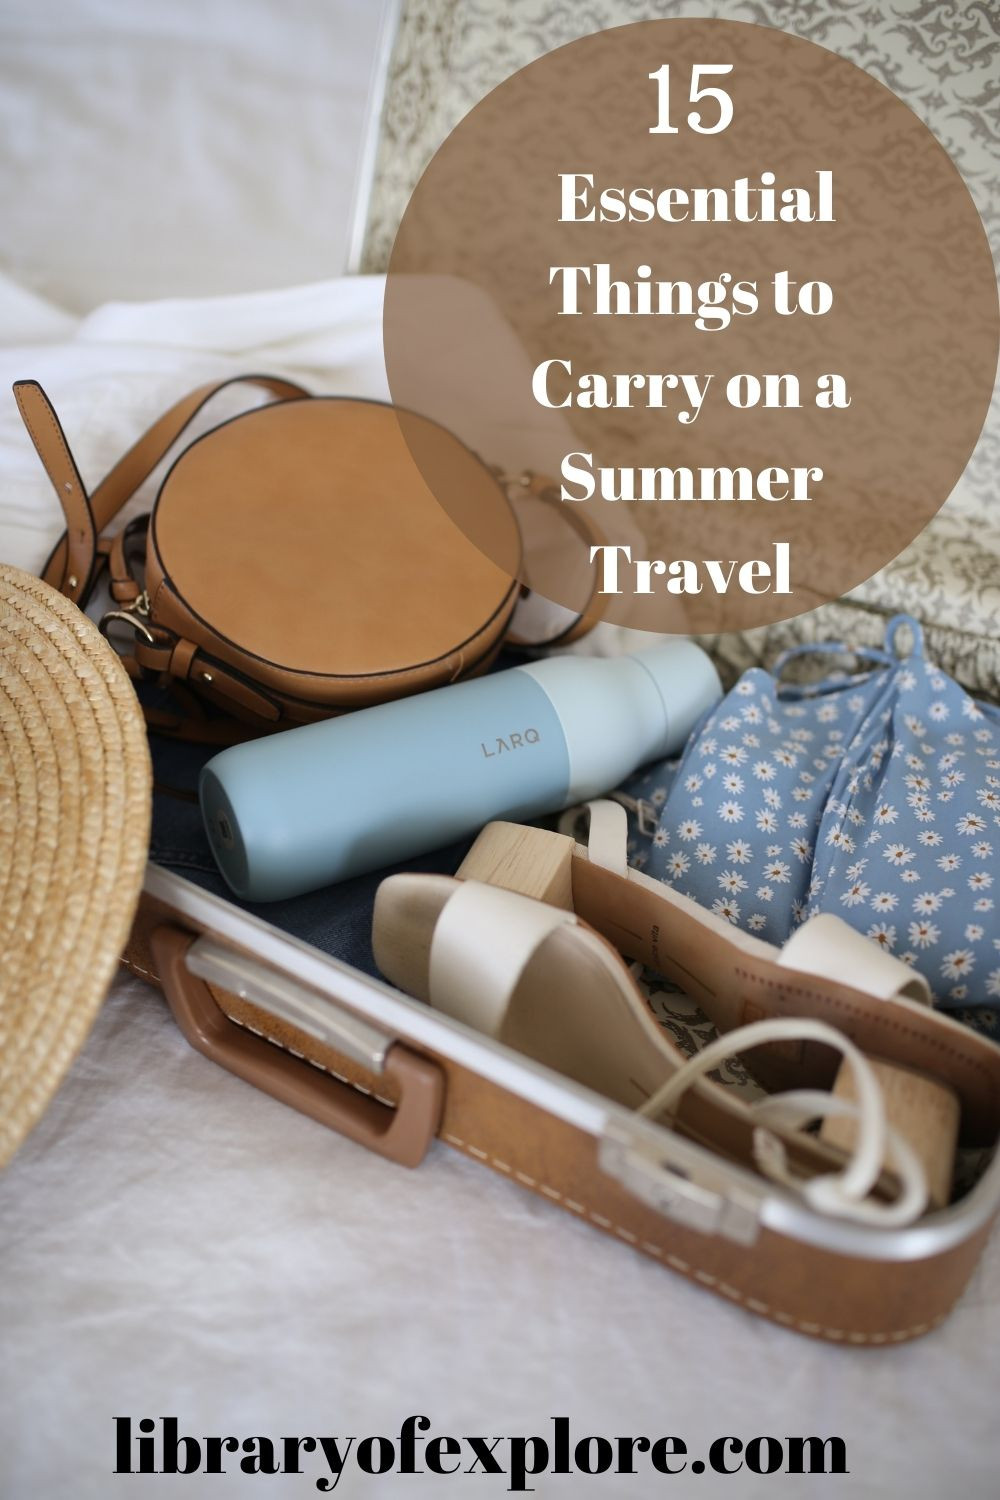 Essential Things to Carry on a Summer Travel